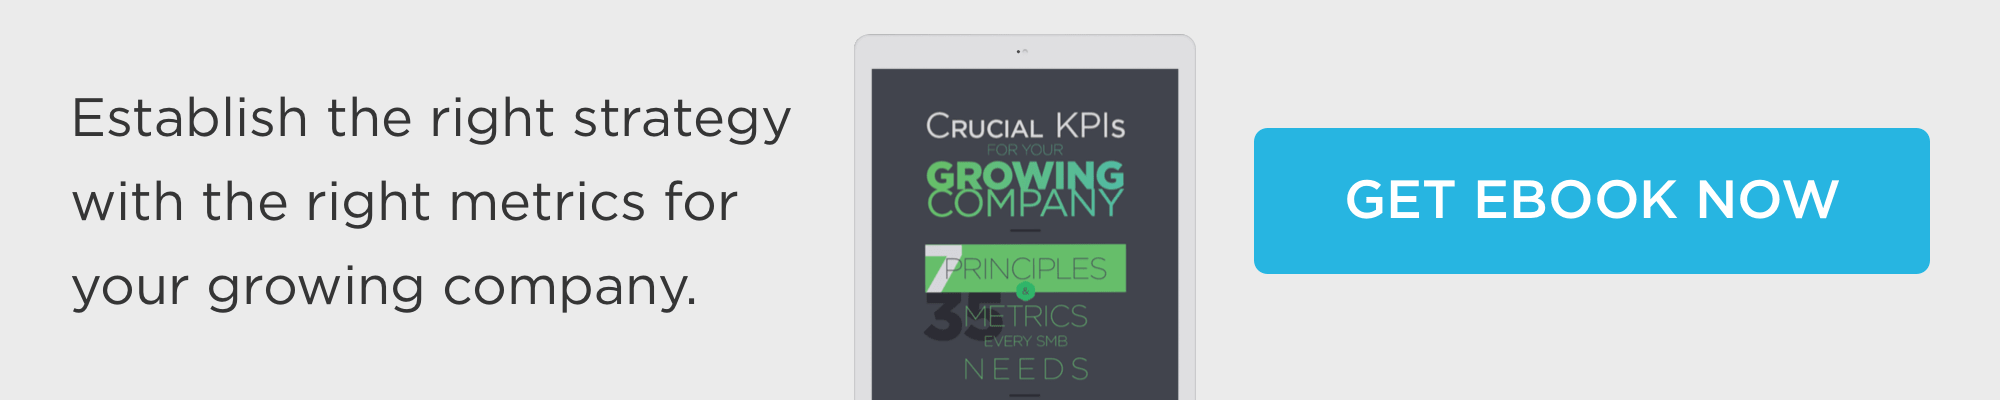 download Crucial KPIs for your growing company